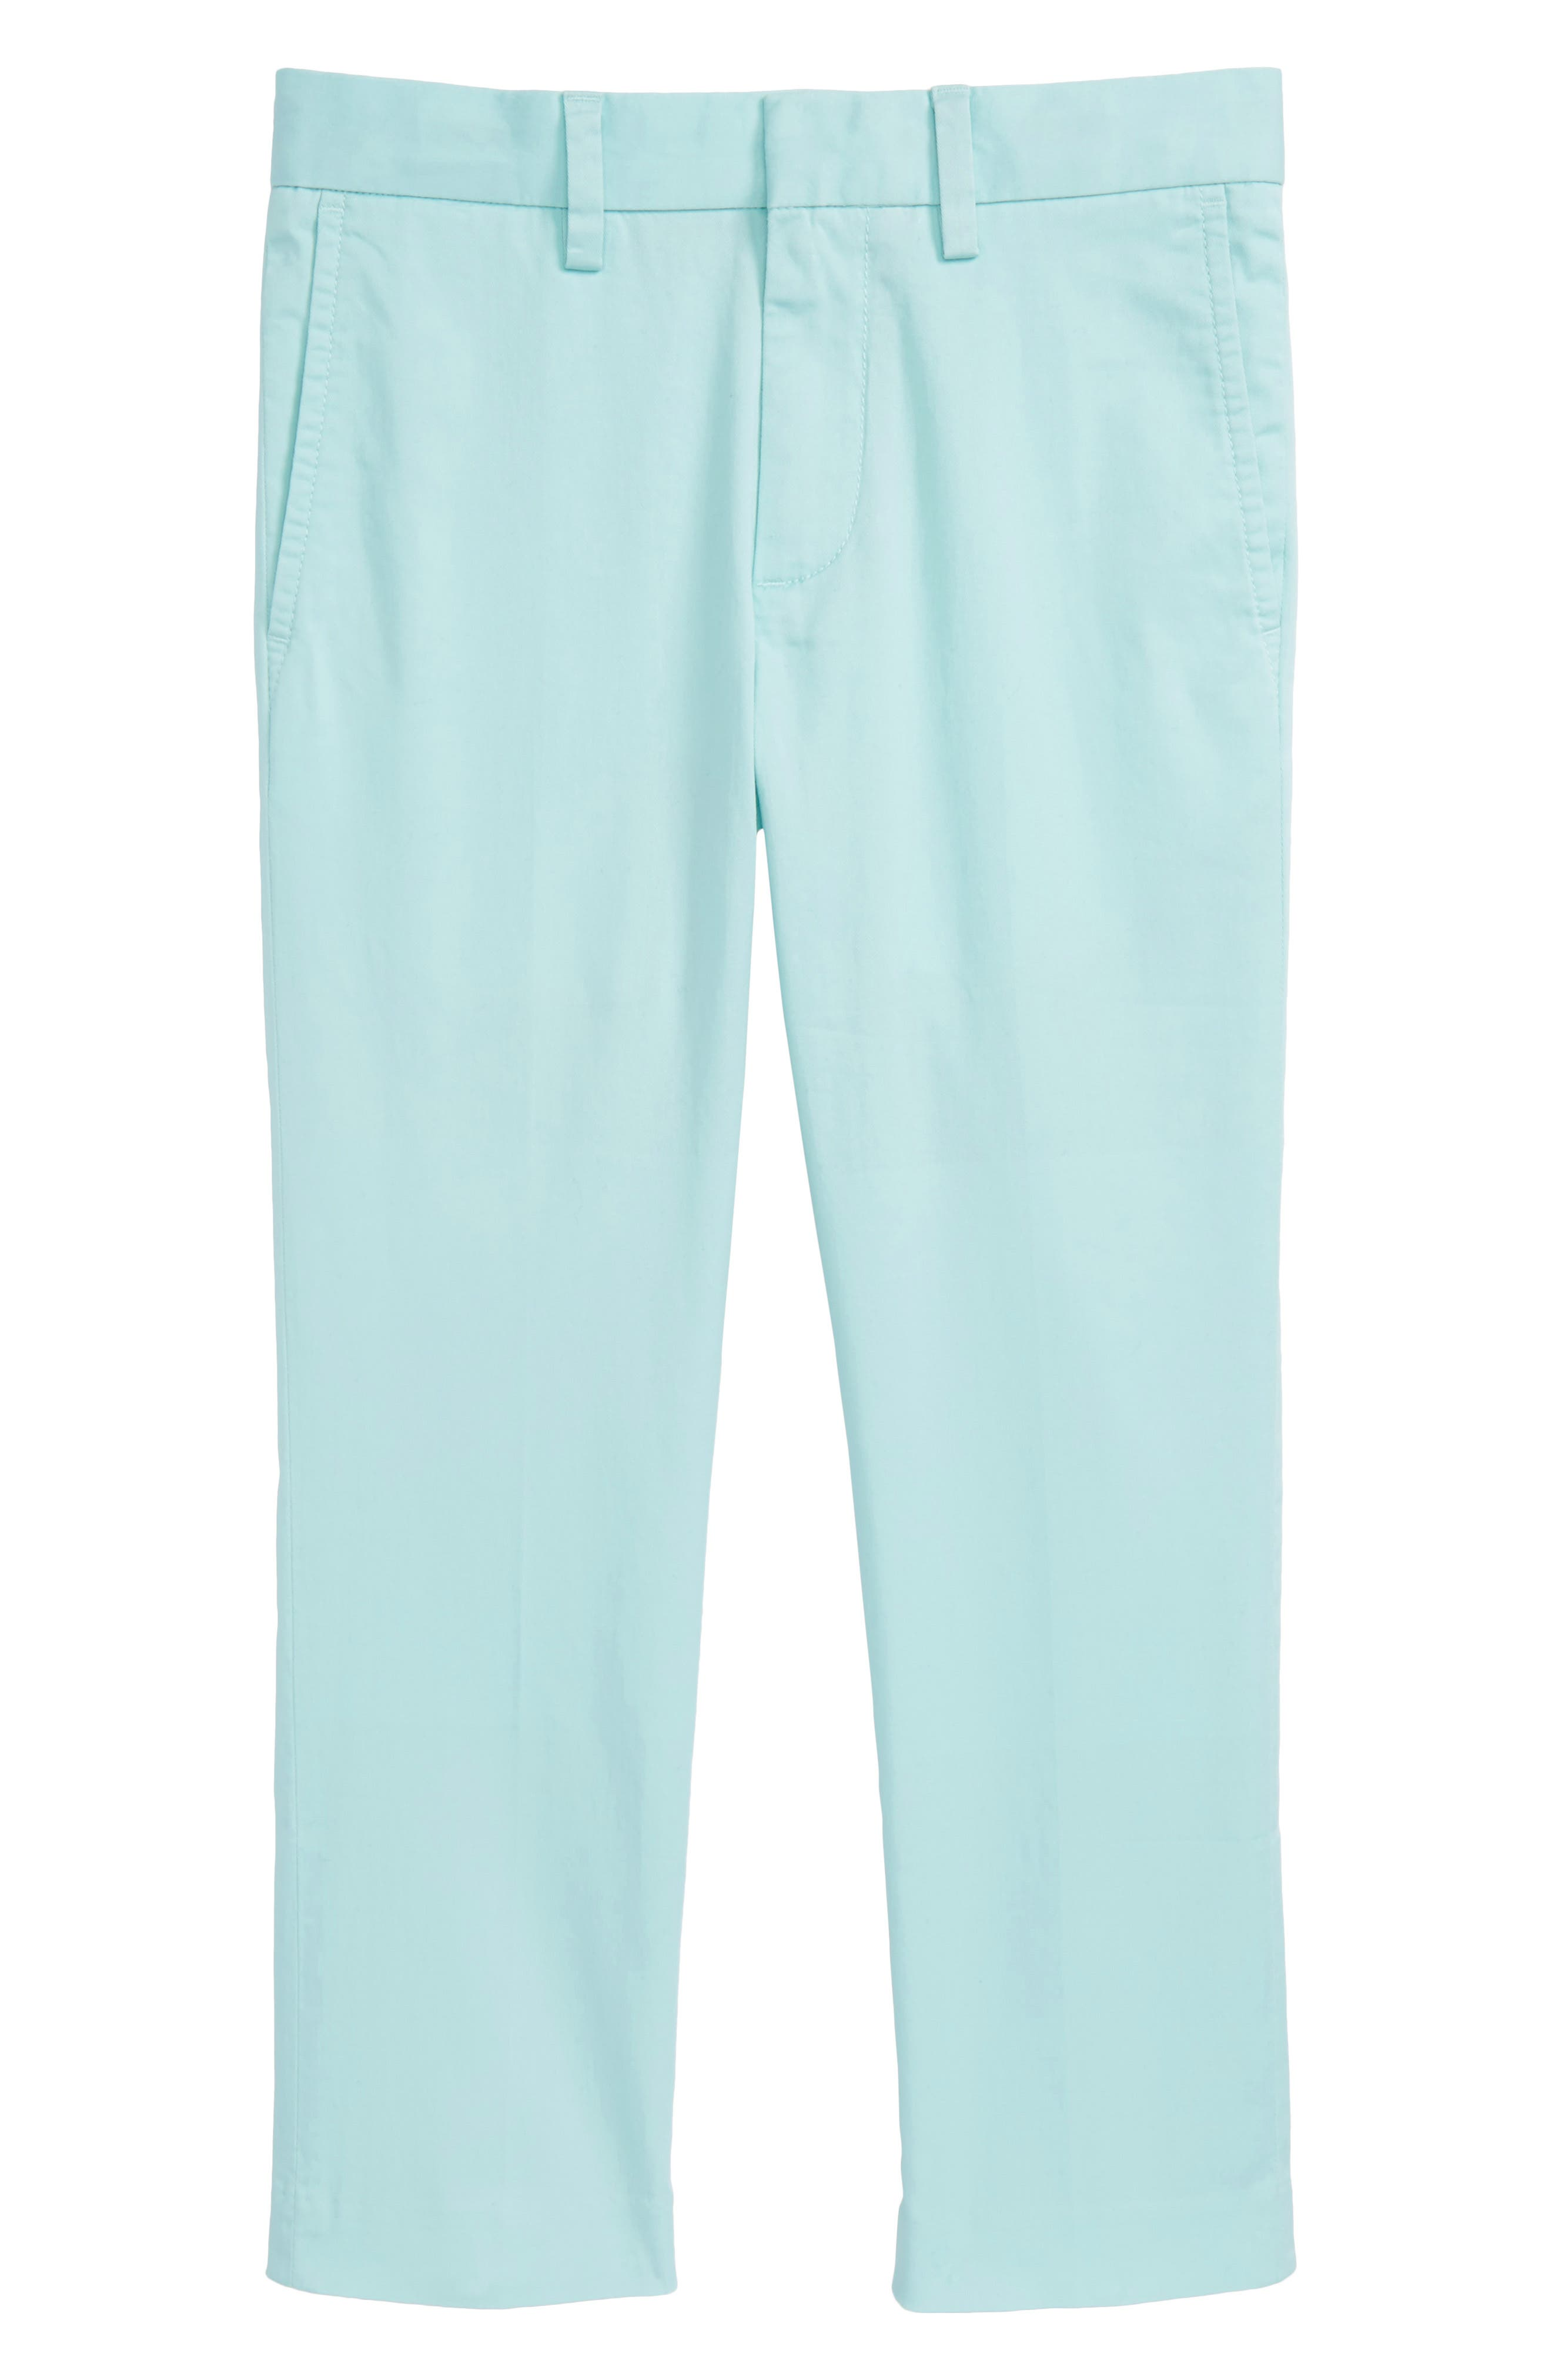 crewcuts by J.Crew Slim Fit Stretch Chino Pants (Toddler Boys, Little Boys & Big Boys)